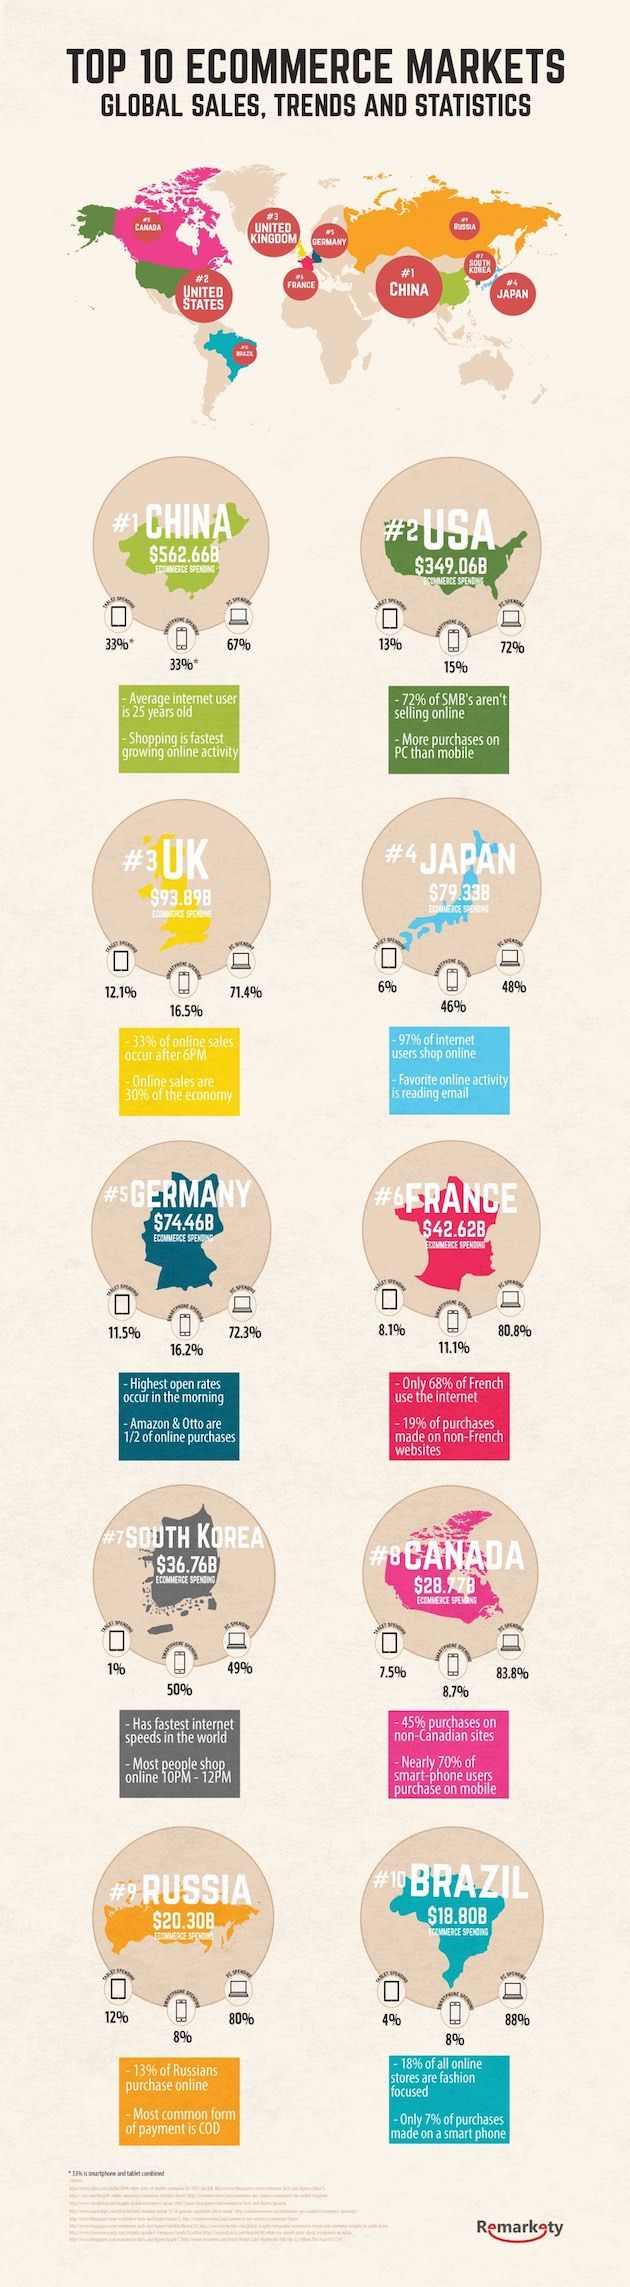 Ecommerce is booming, and this infographic shows the 10 countries leading the charge.